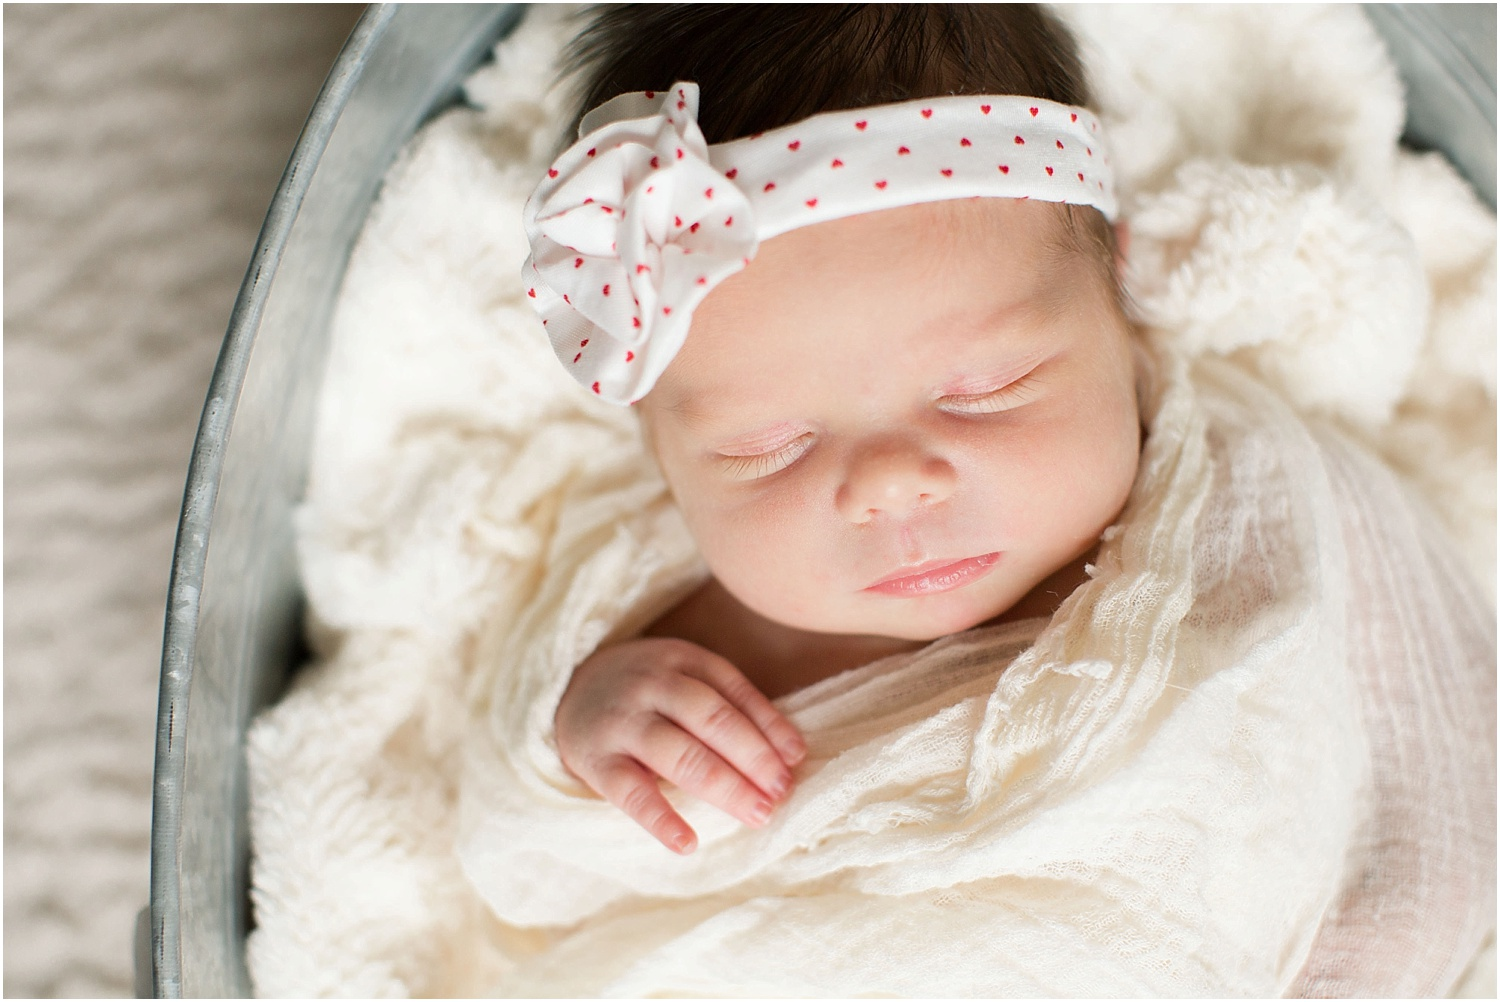 Newborn Session | Ashley Powell Photography | Blacksburg, VA